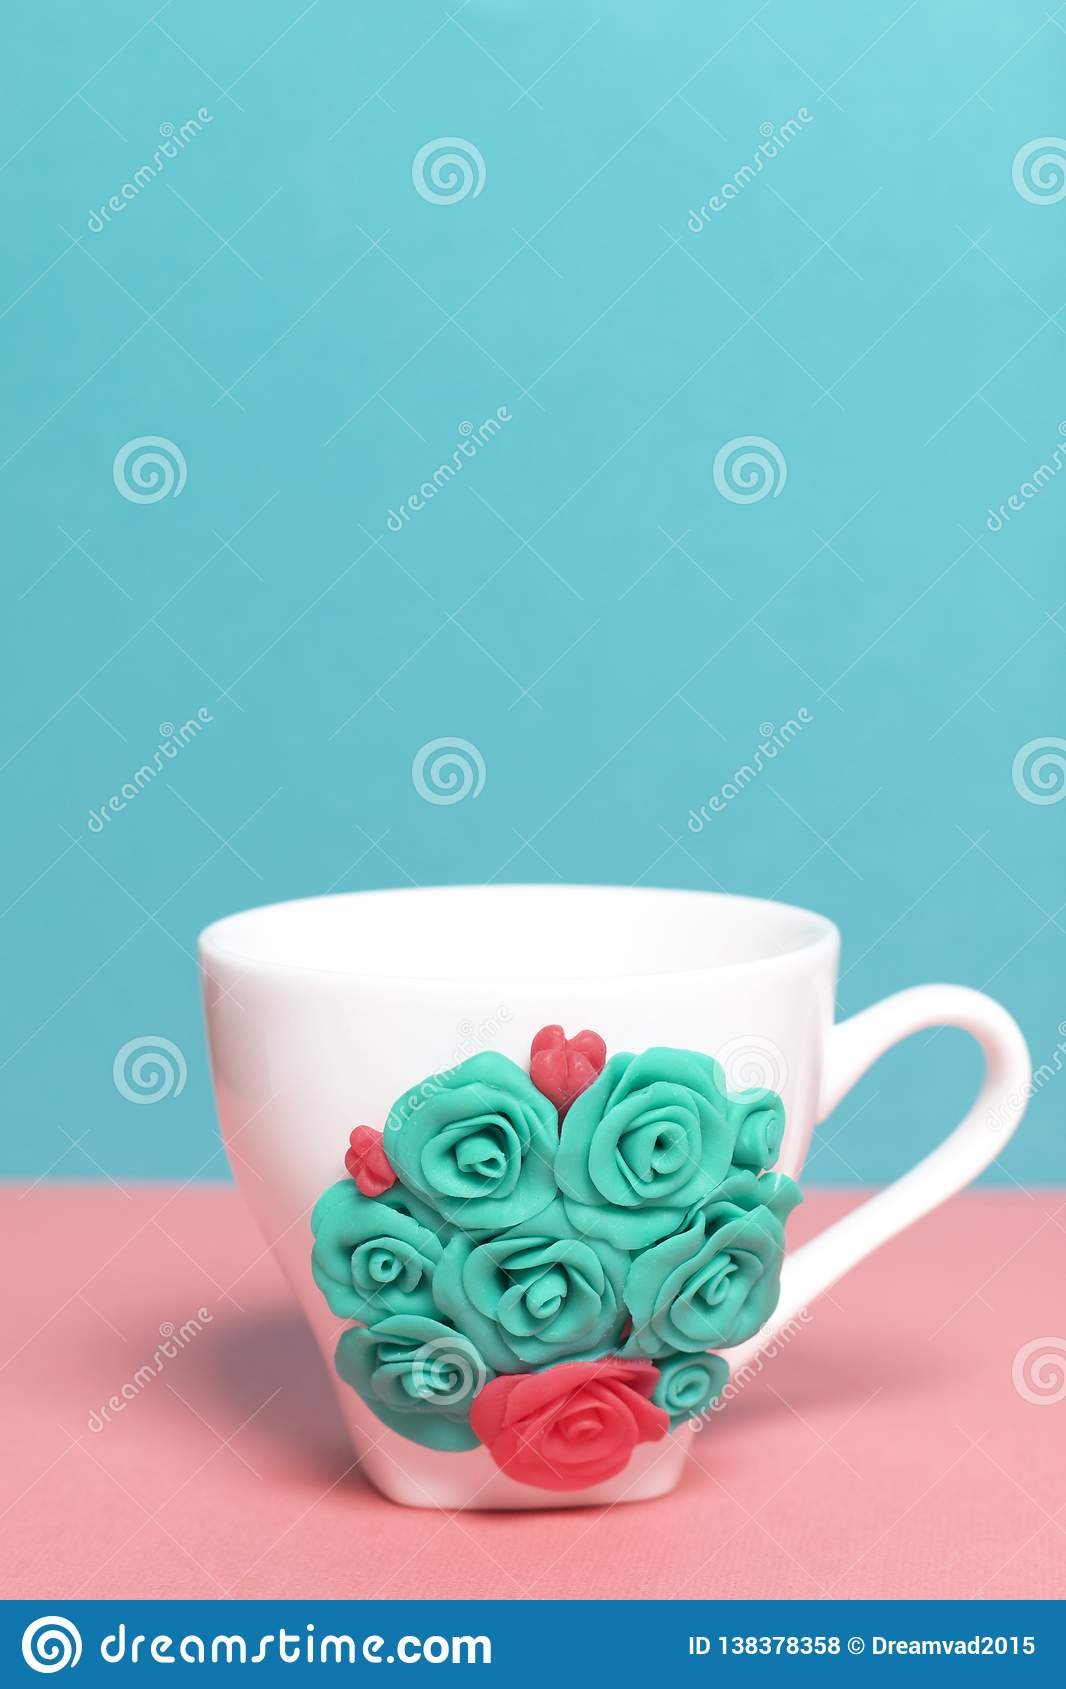 Mug Decorated With Flowers Made Of Polymer Clay Stock Photo Image Of Handicraft Craft 138378358